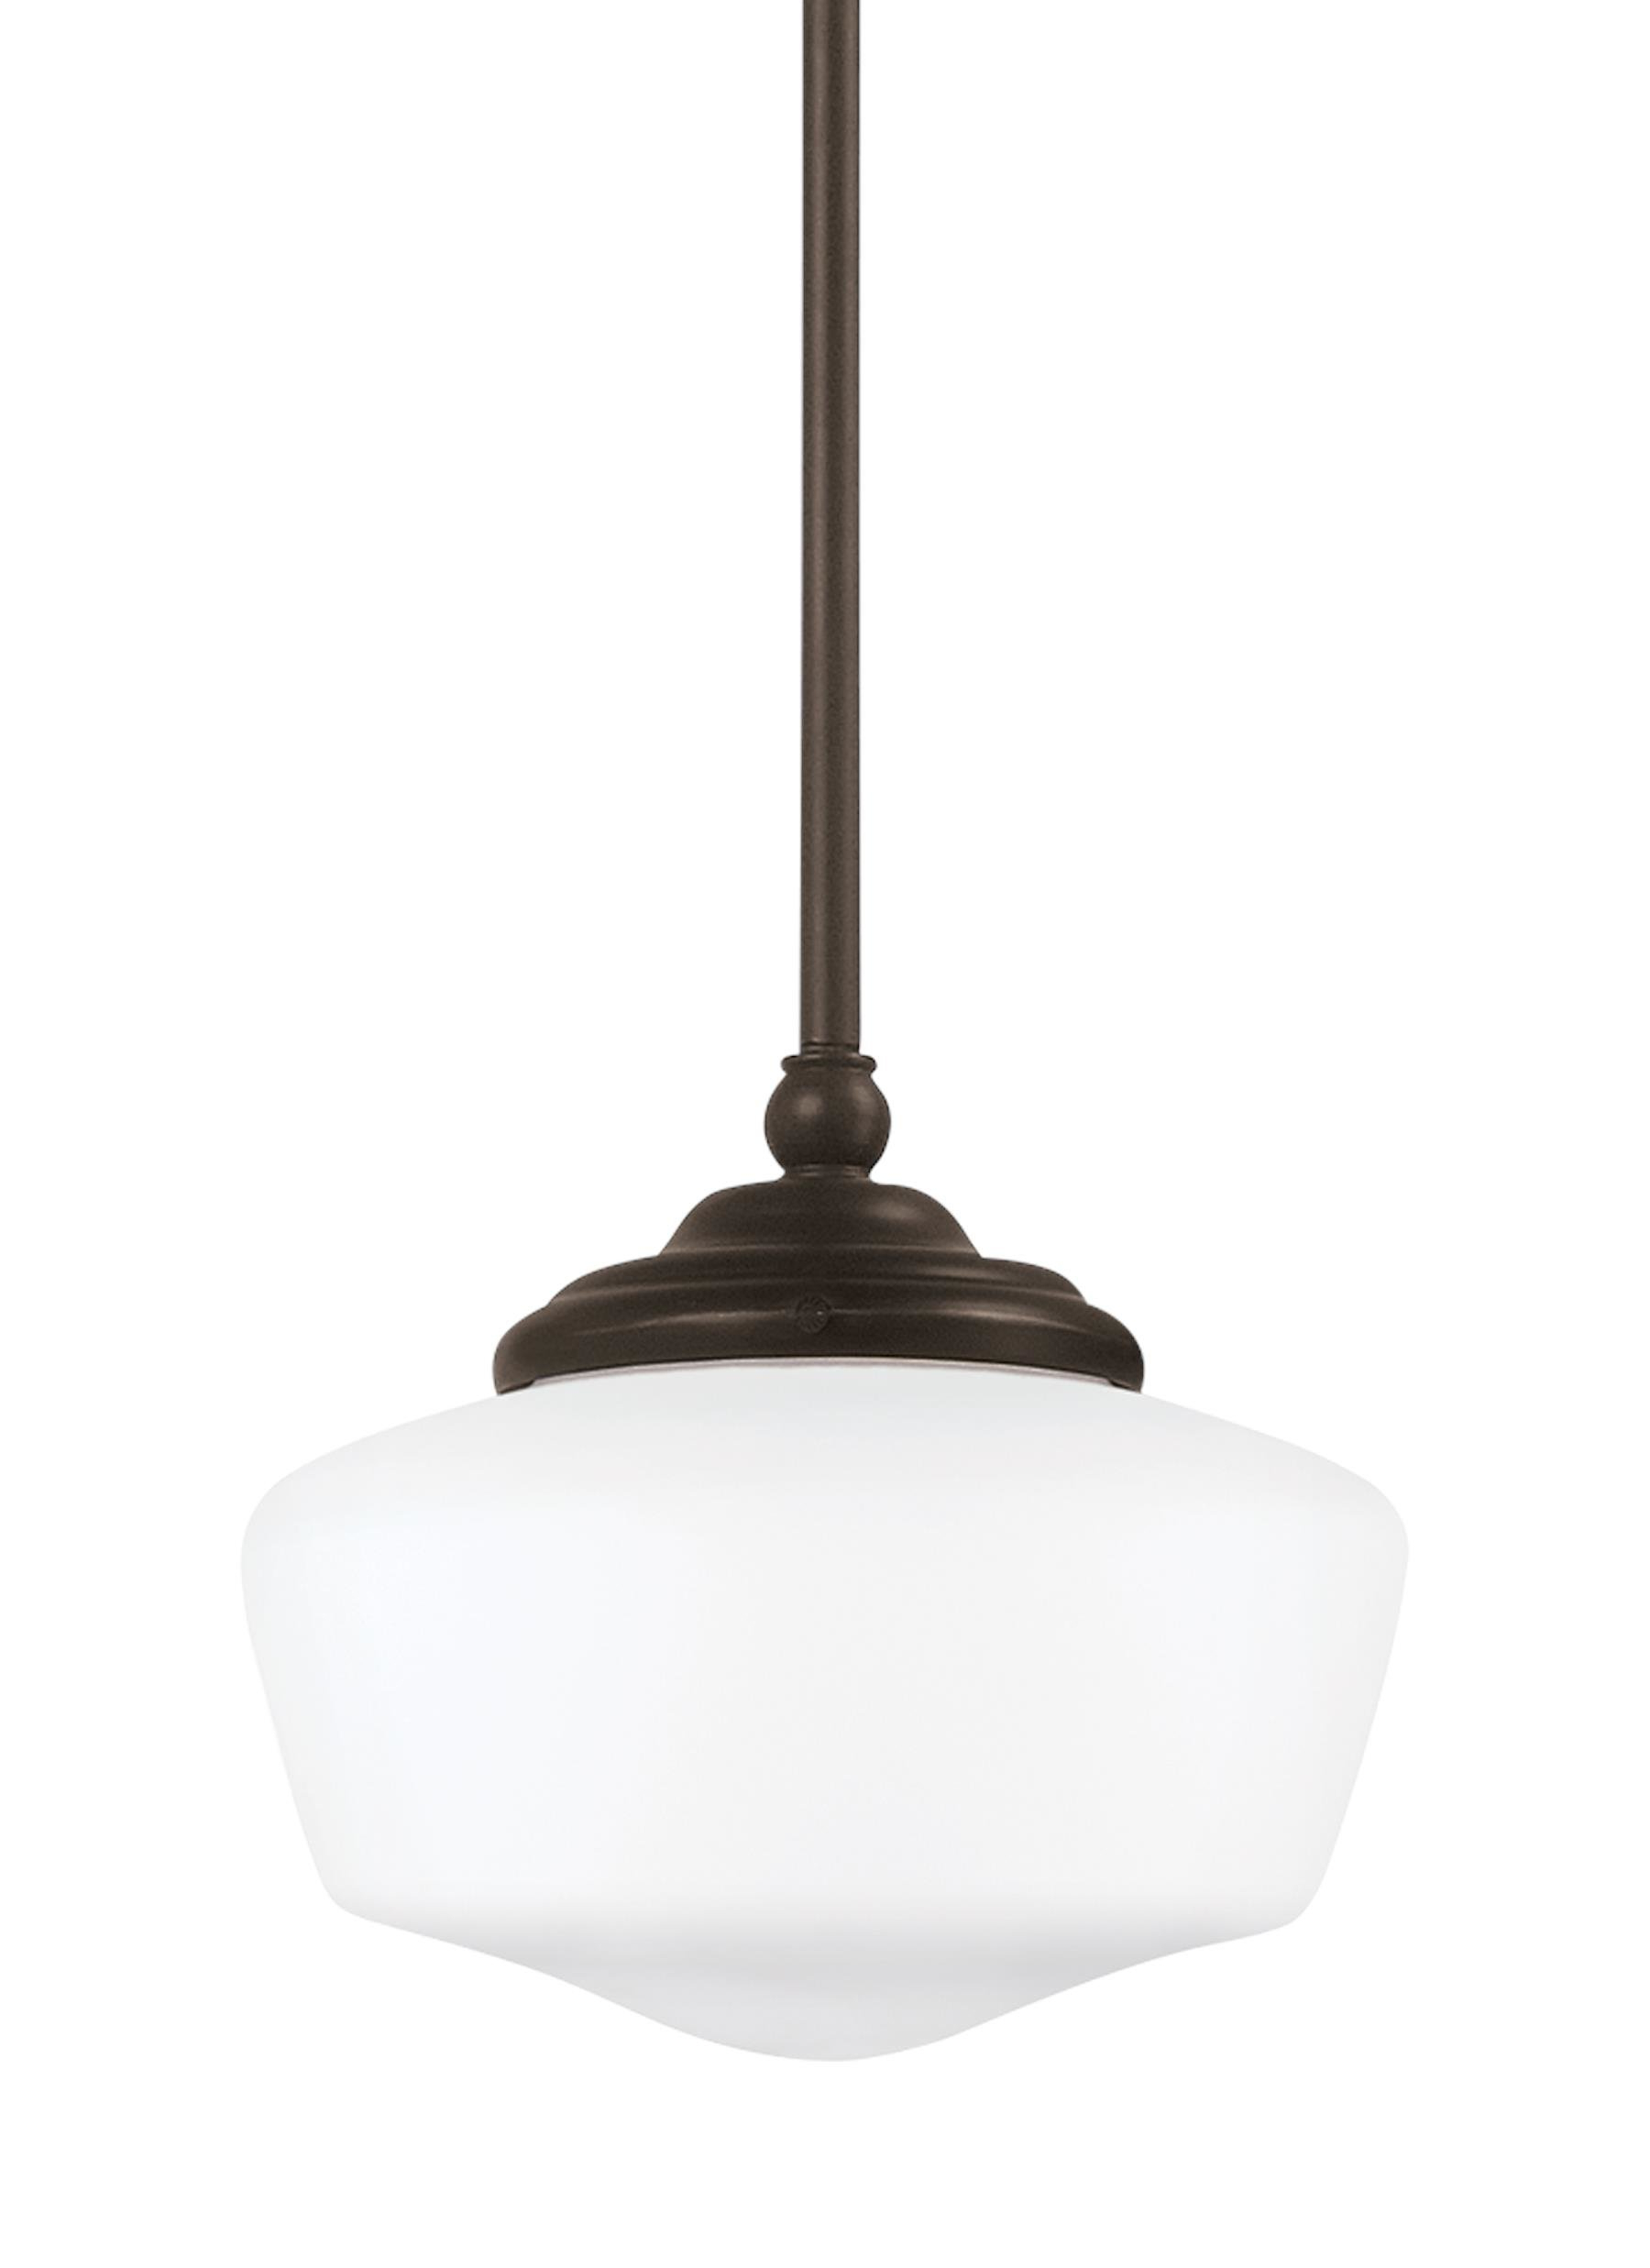 Panacea 1 Light Single Schoolhouse Pendant Within Fashionable 1 Light Single Schoolhouse Pendants (View 14 of 20)